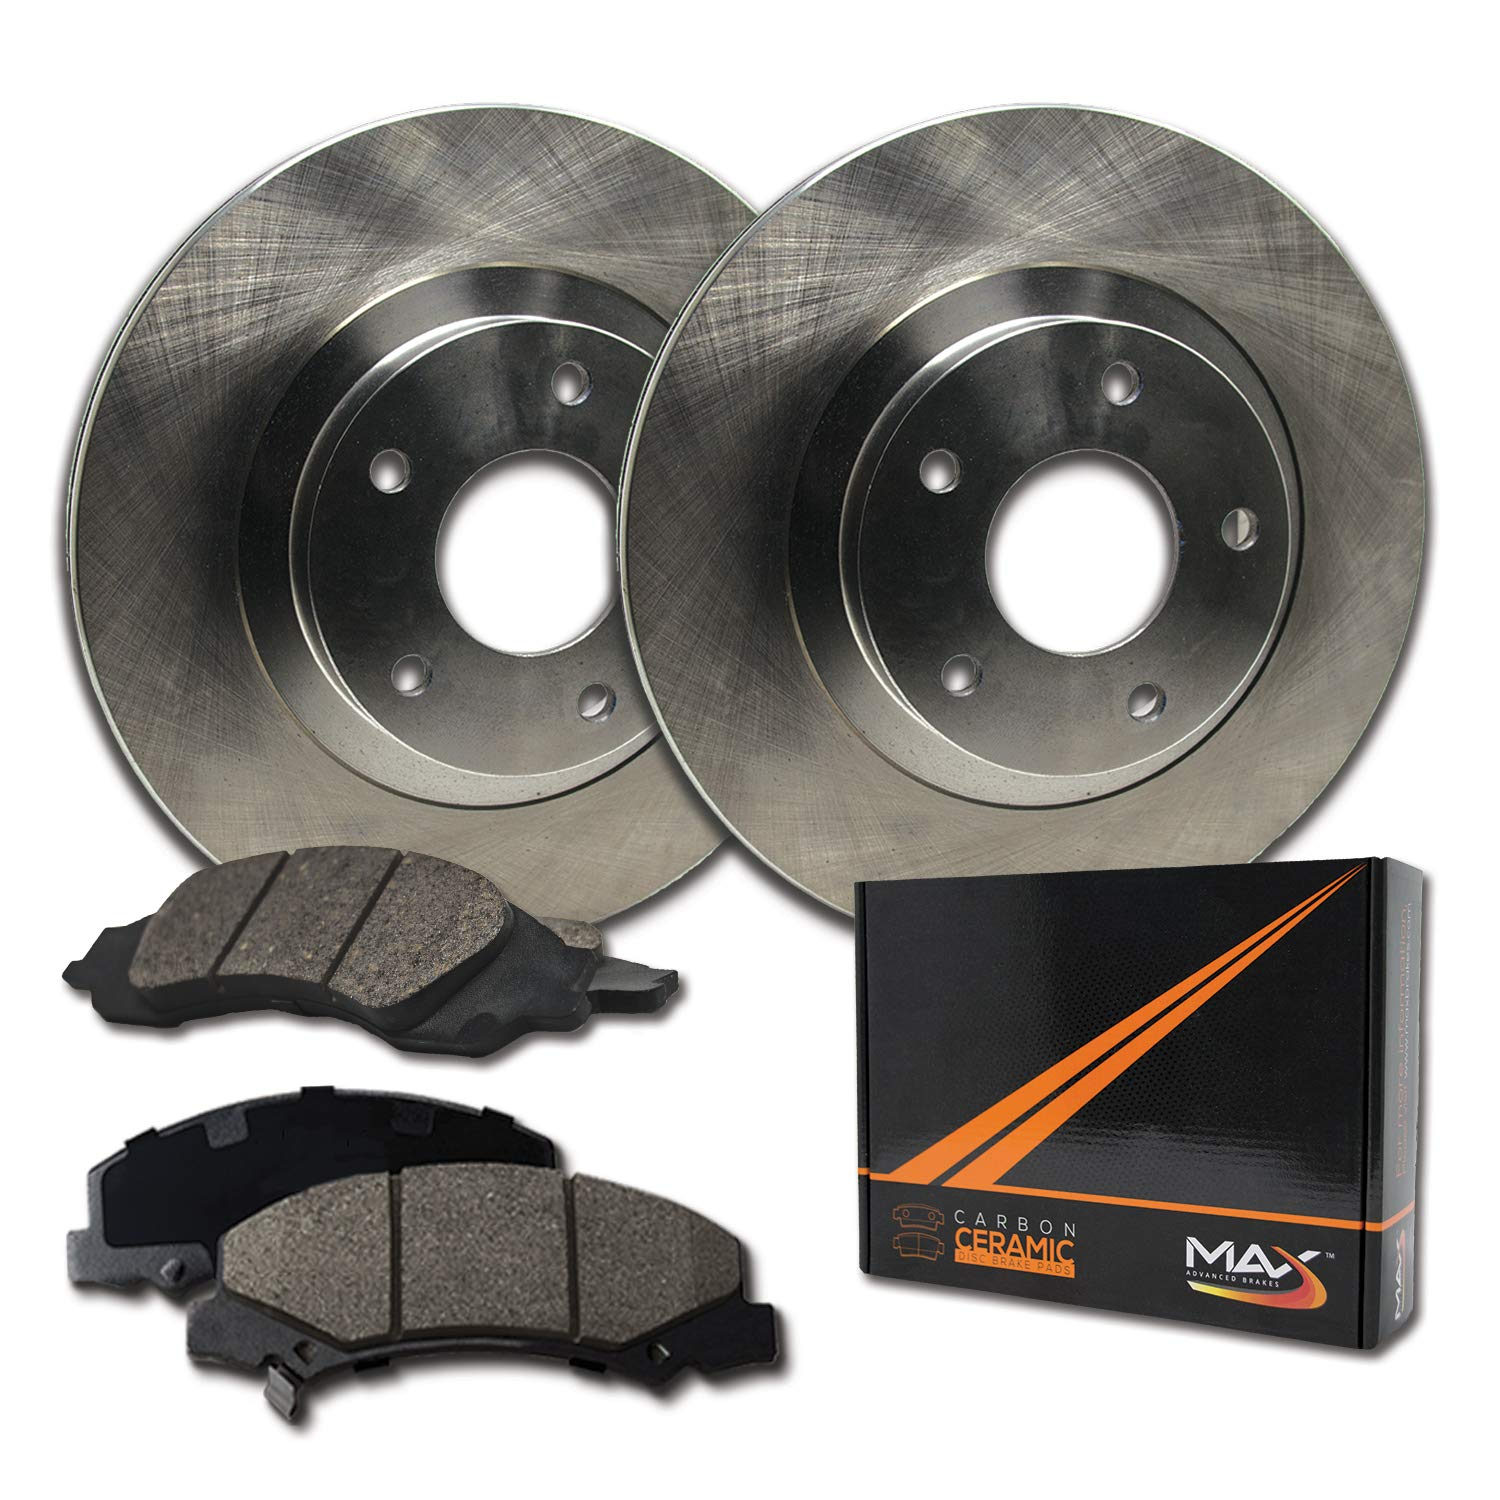 OE Series Rotors + Ceramic Pads Max Brakes Front Premium Brake Kit KT012641 Fits: 2002 02 2003 03 2004 04 Chevy Avalanche 1500